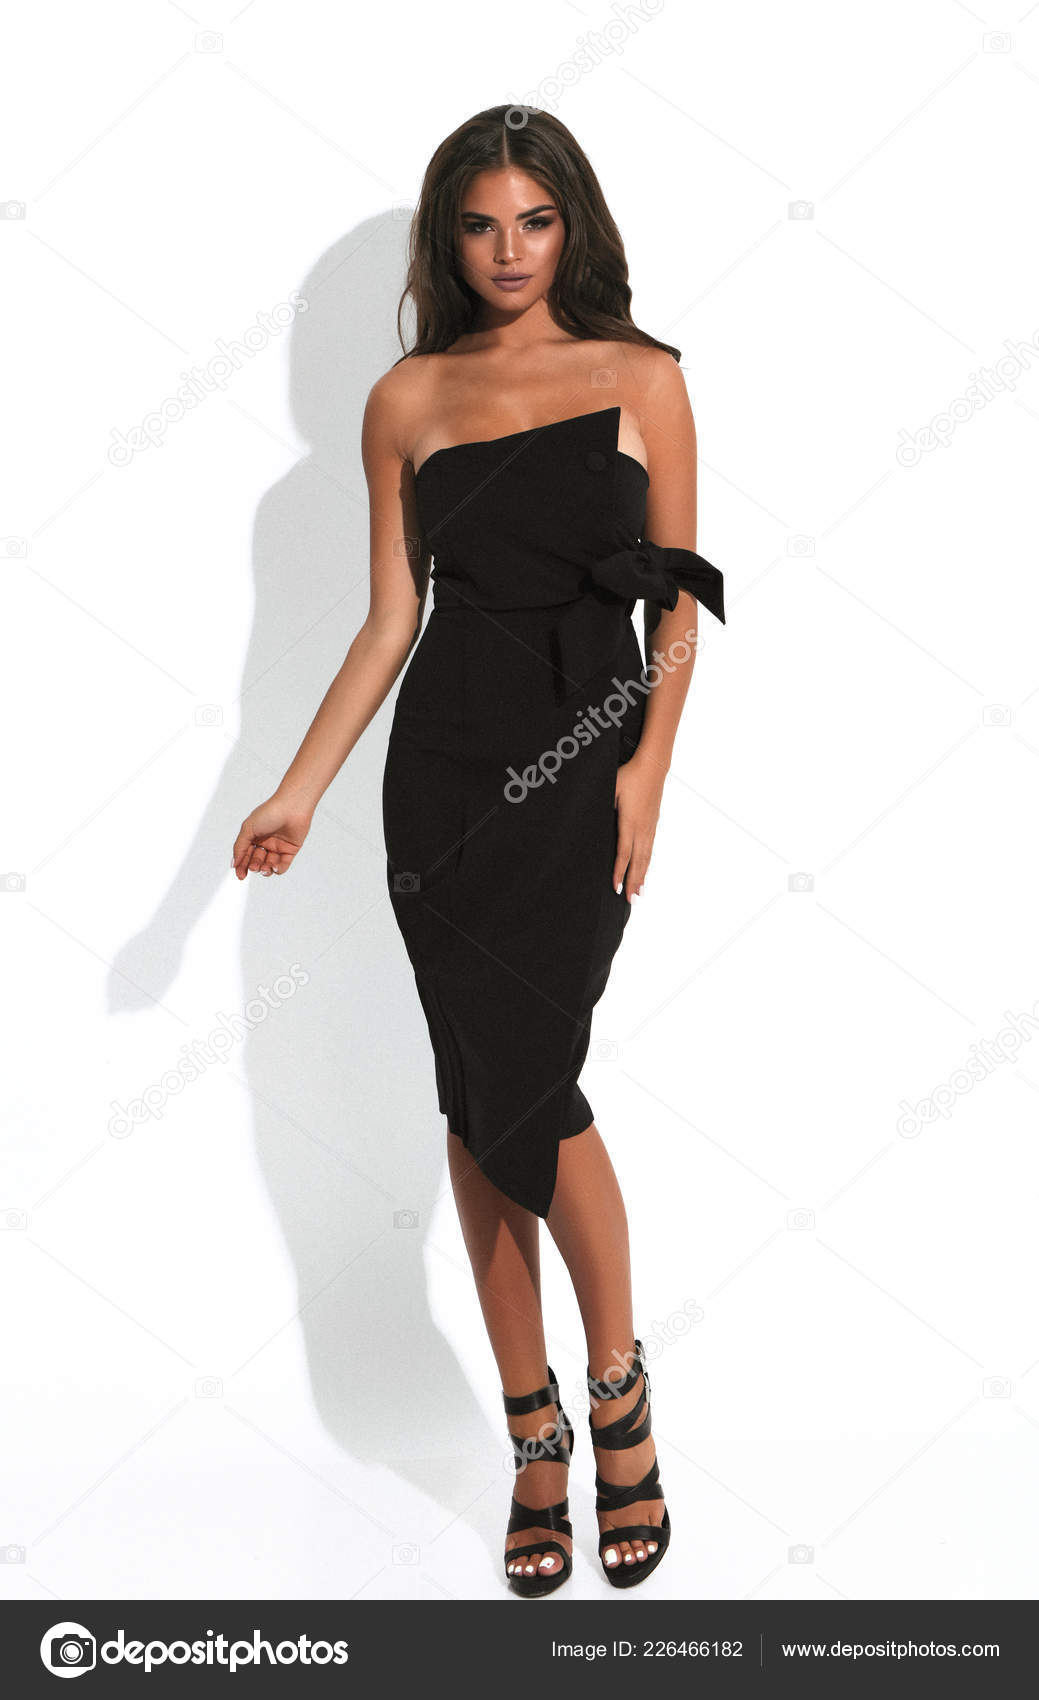 Passion Girl Black Cocktail Dress Natural Makeup Perfect Hairstyle